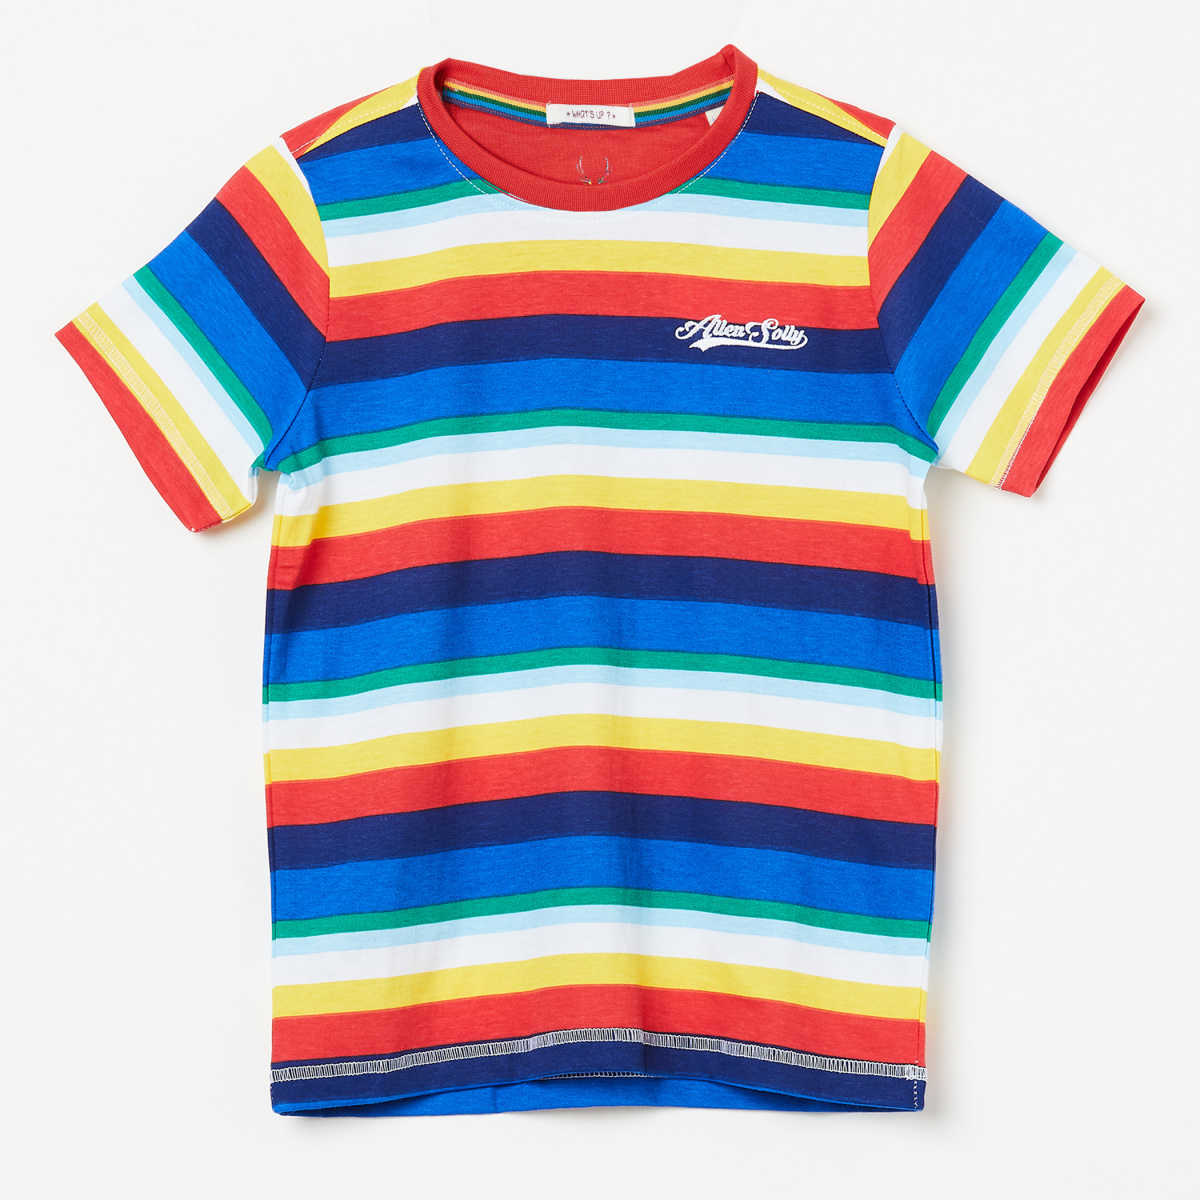 ALLEN SOLLY Striped Crew-Neck T-shirt